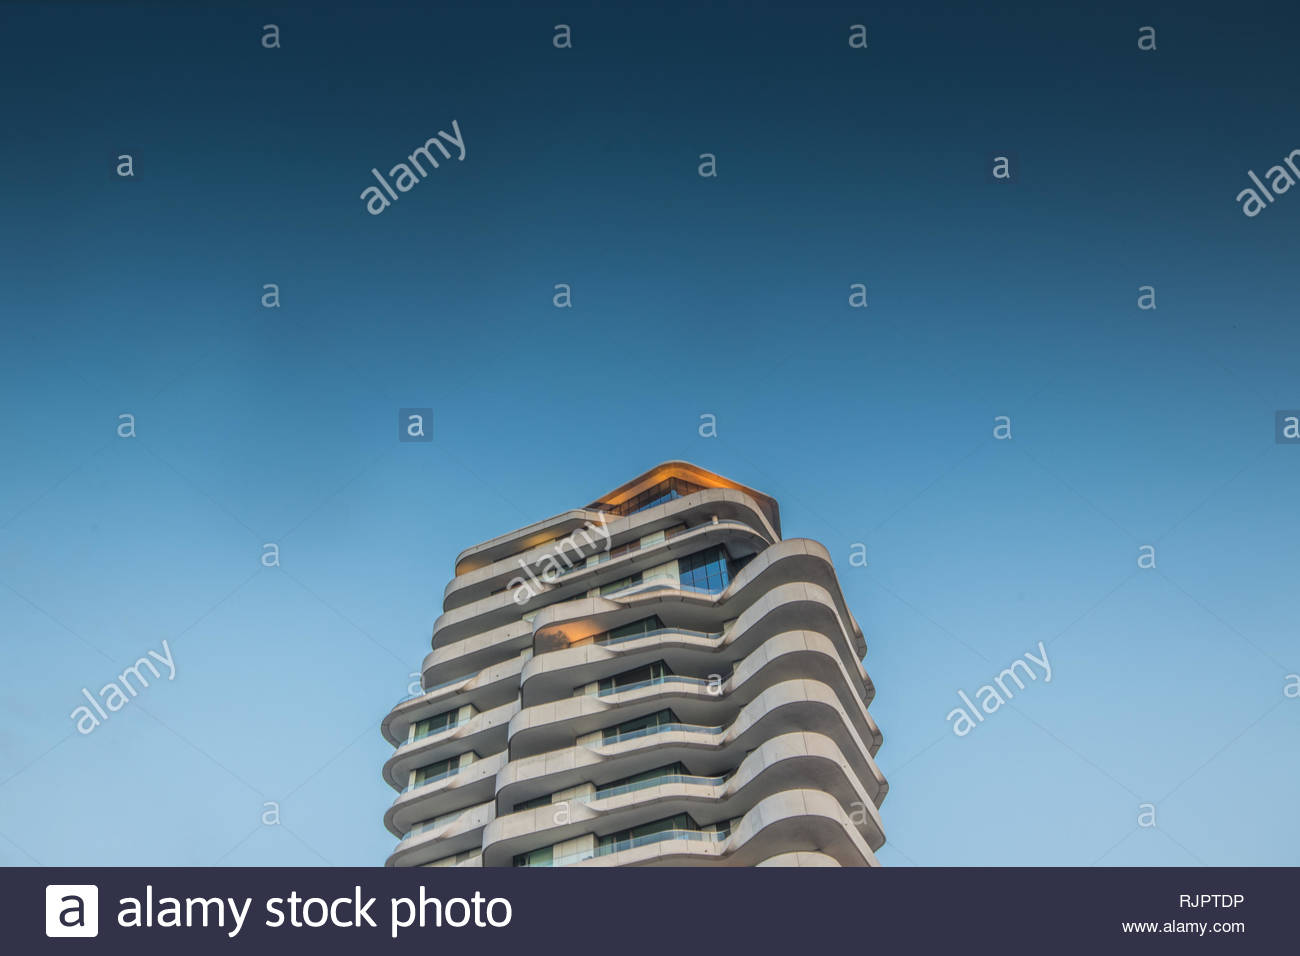 Marco Polo Tower, Hafen City, Hamburg, Germany - Stock Image